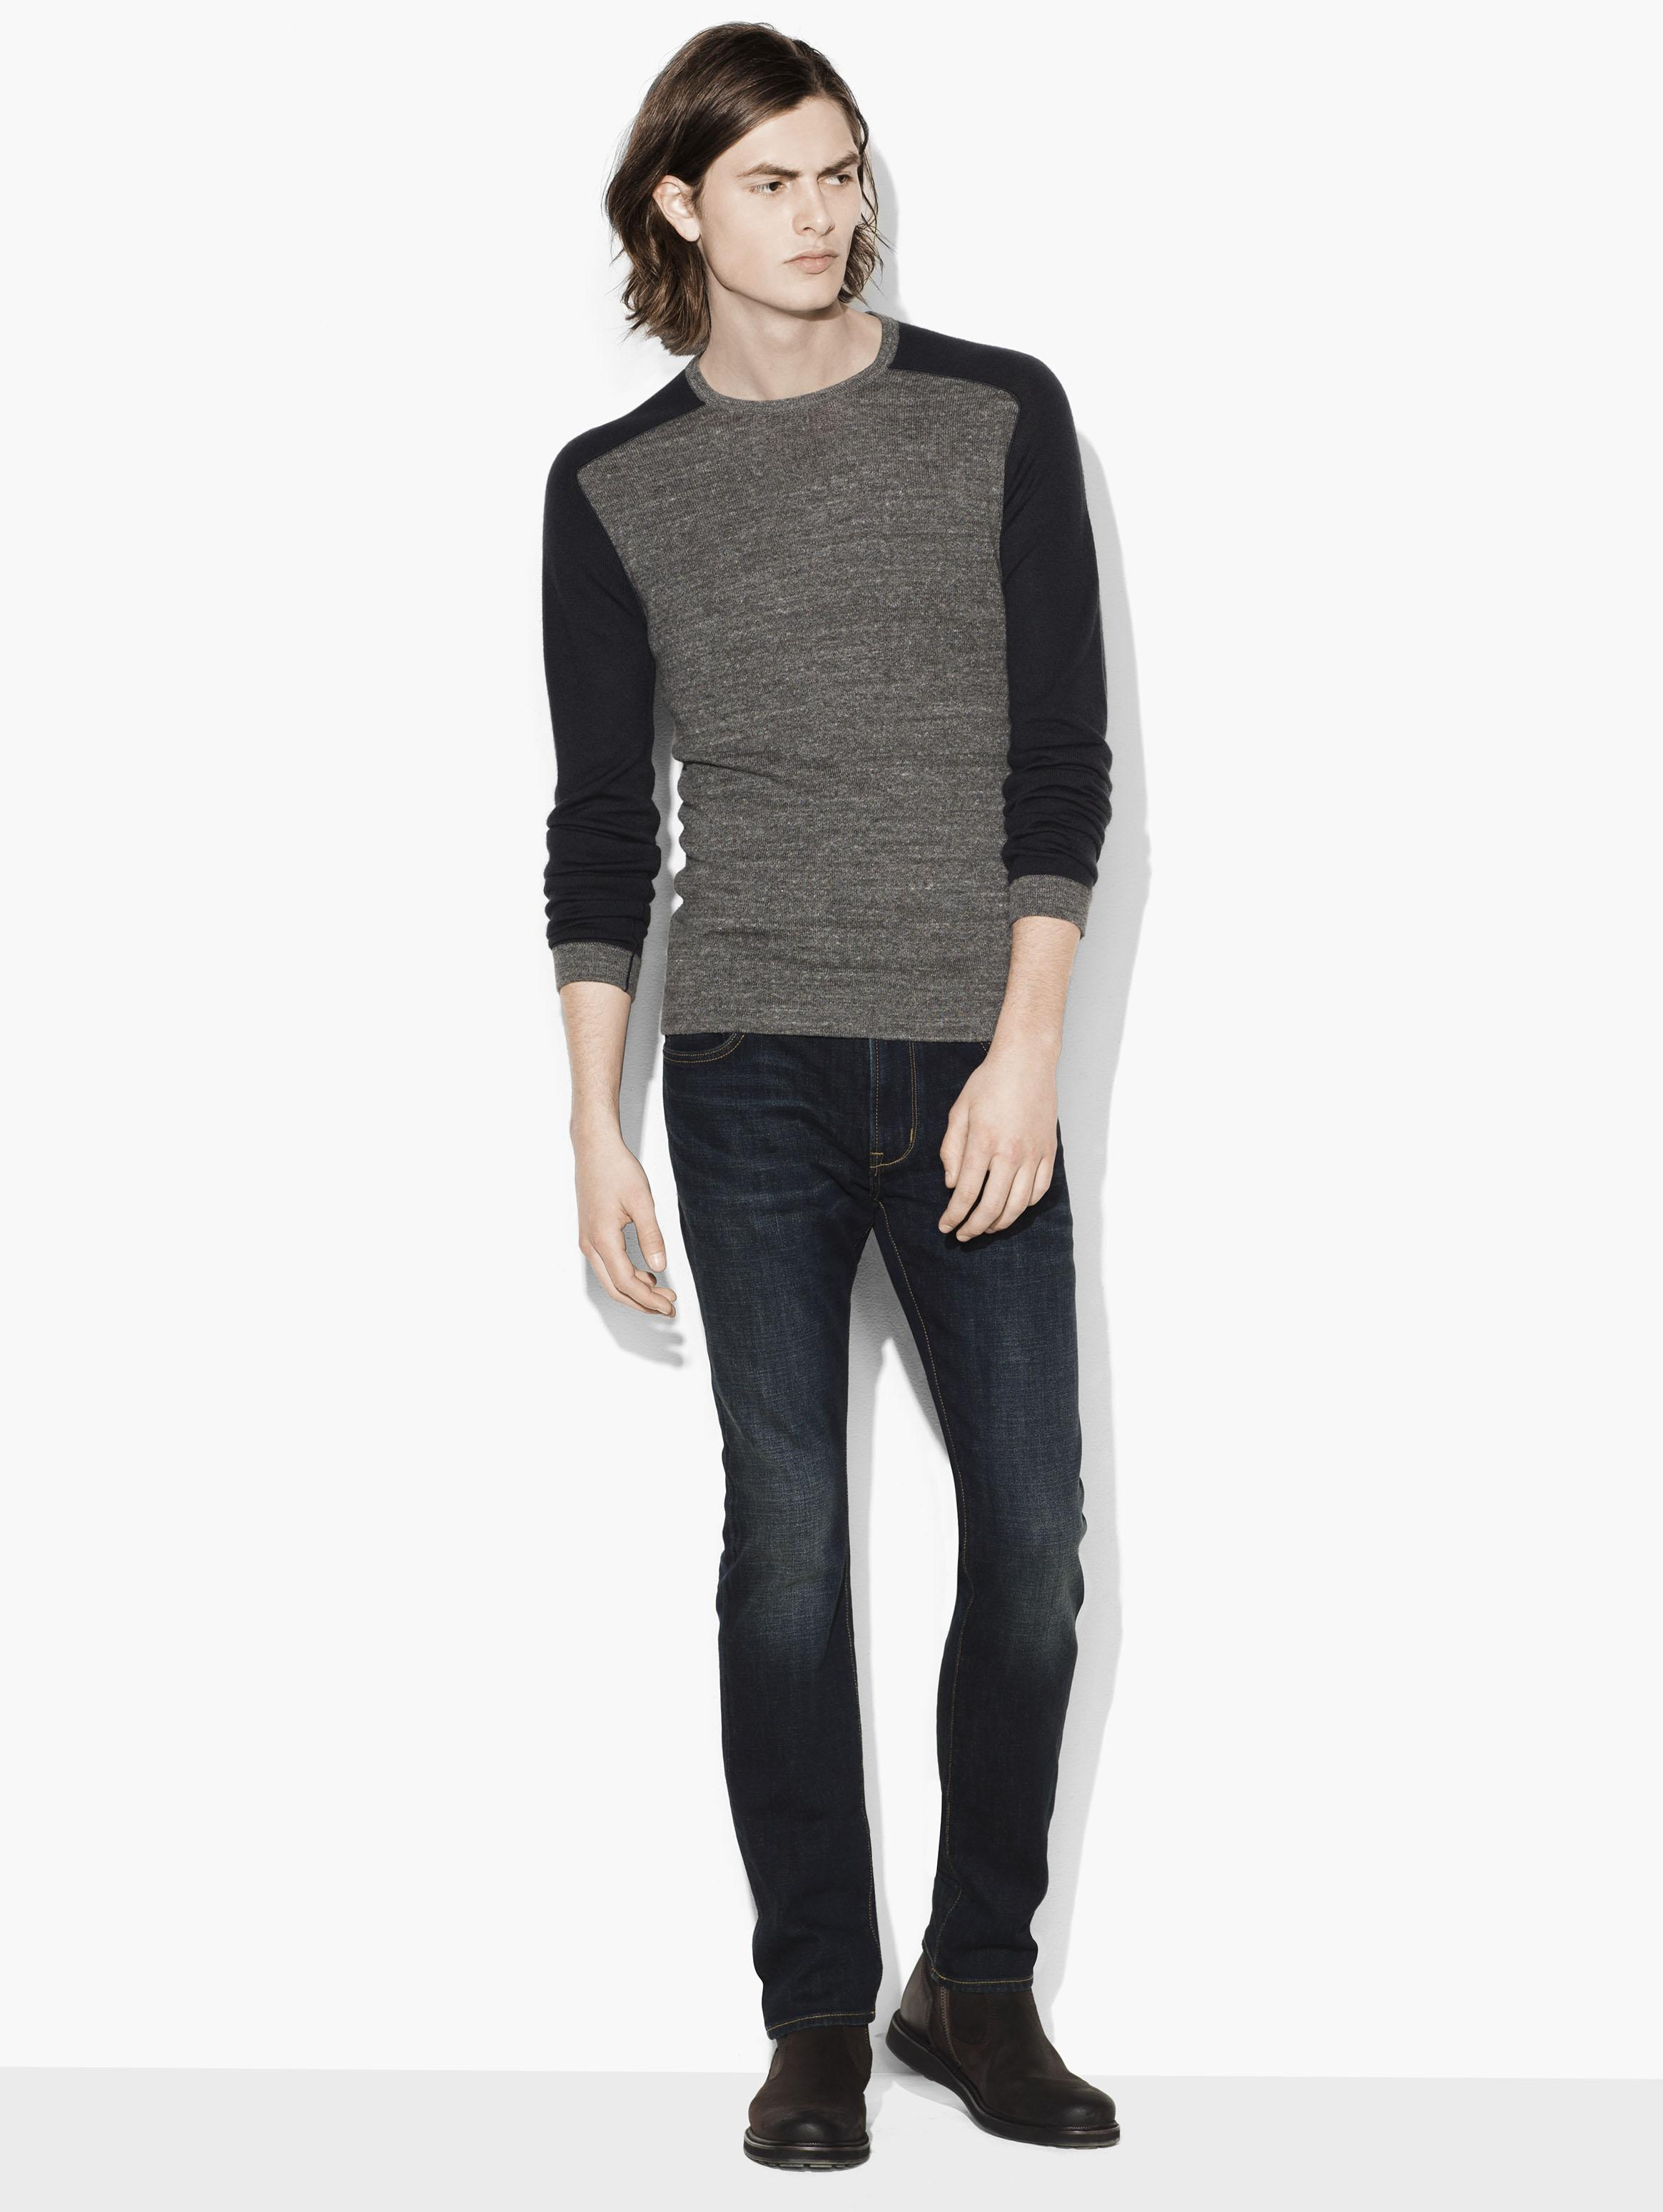 Saddle Shoulder Crewneck Sweater